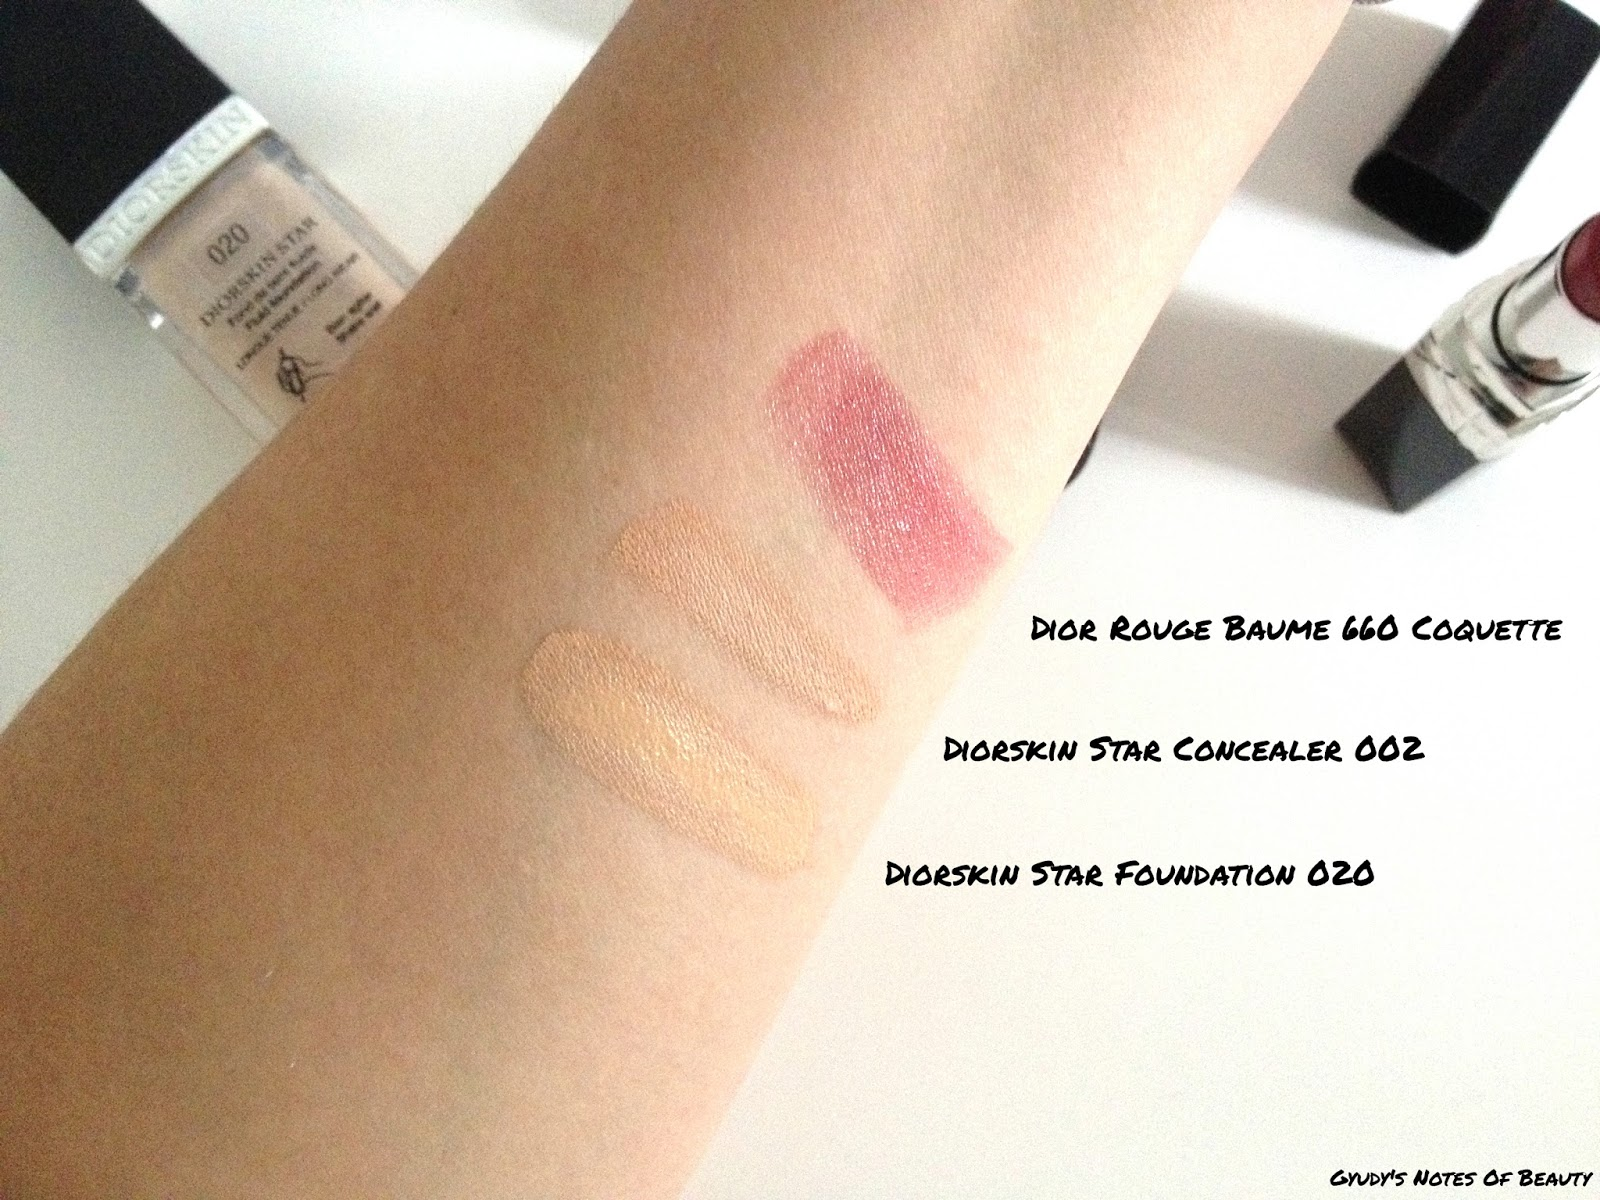 Diorskin Star Foundation Concealer Dior Rouge Baume Coquette Swatches